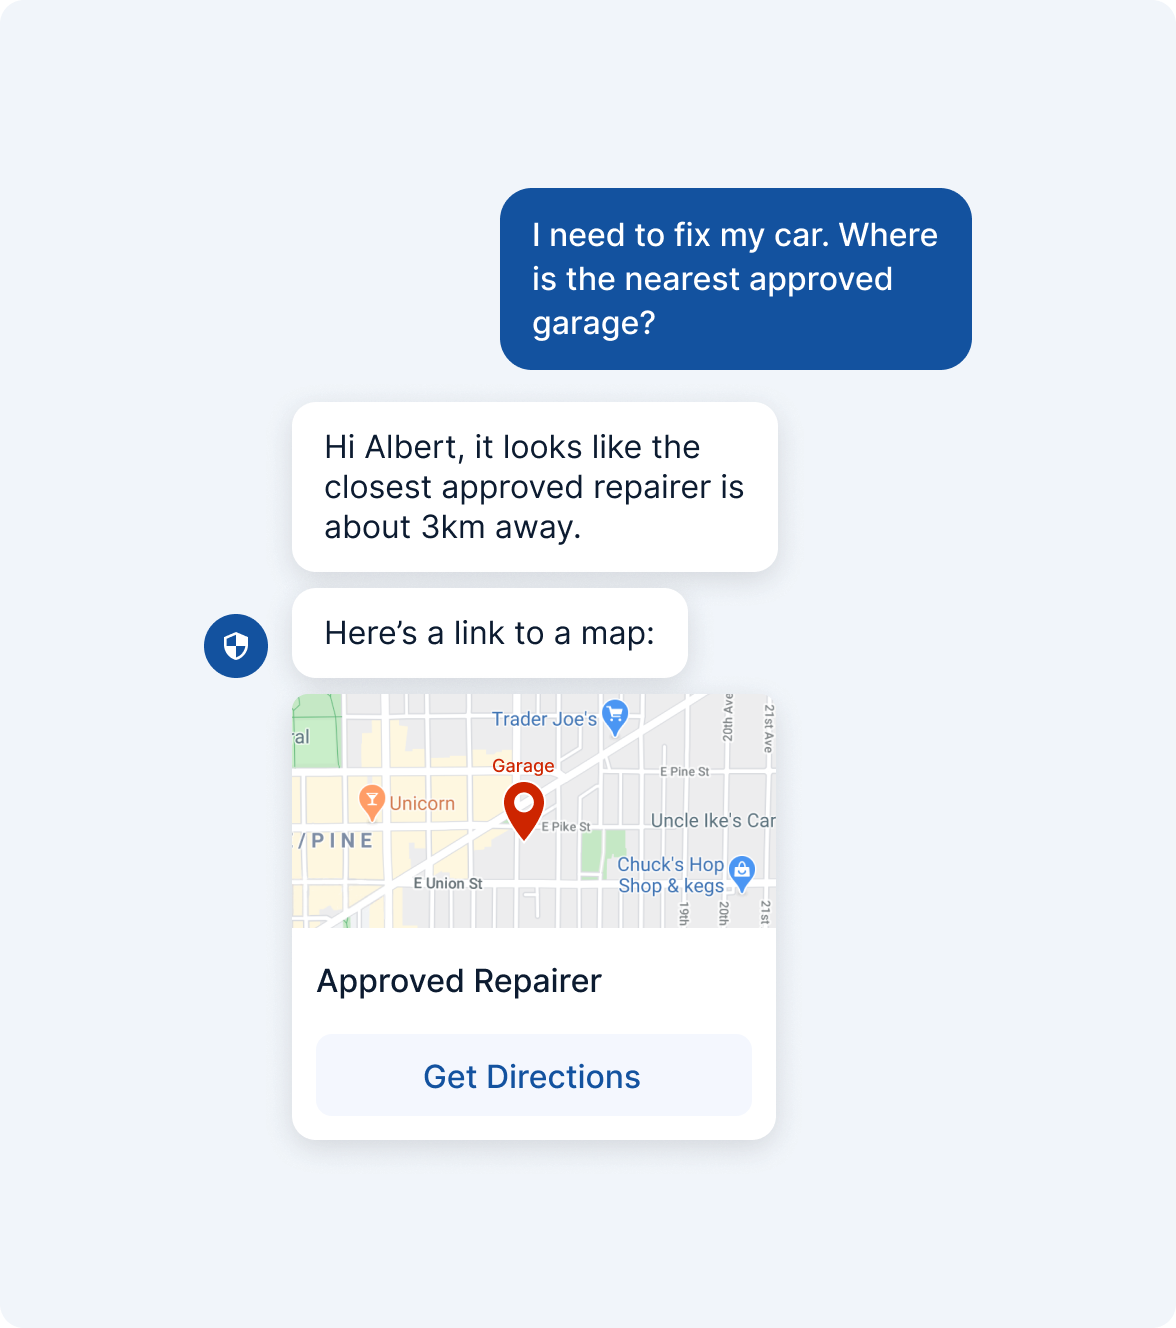 Find Approved Repairer with a Bot